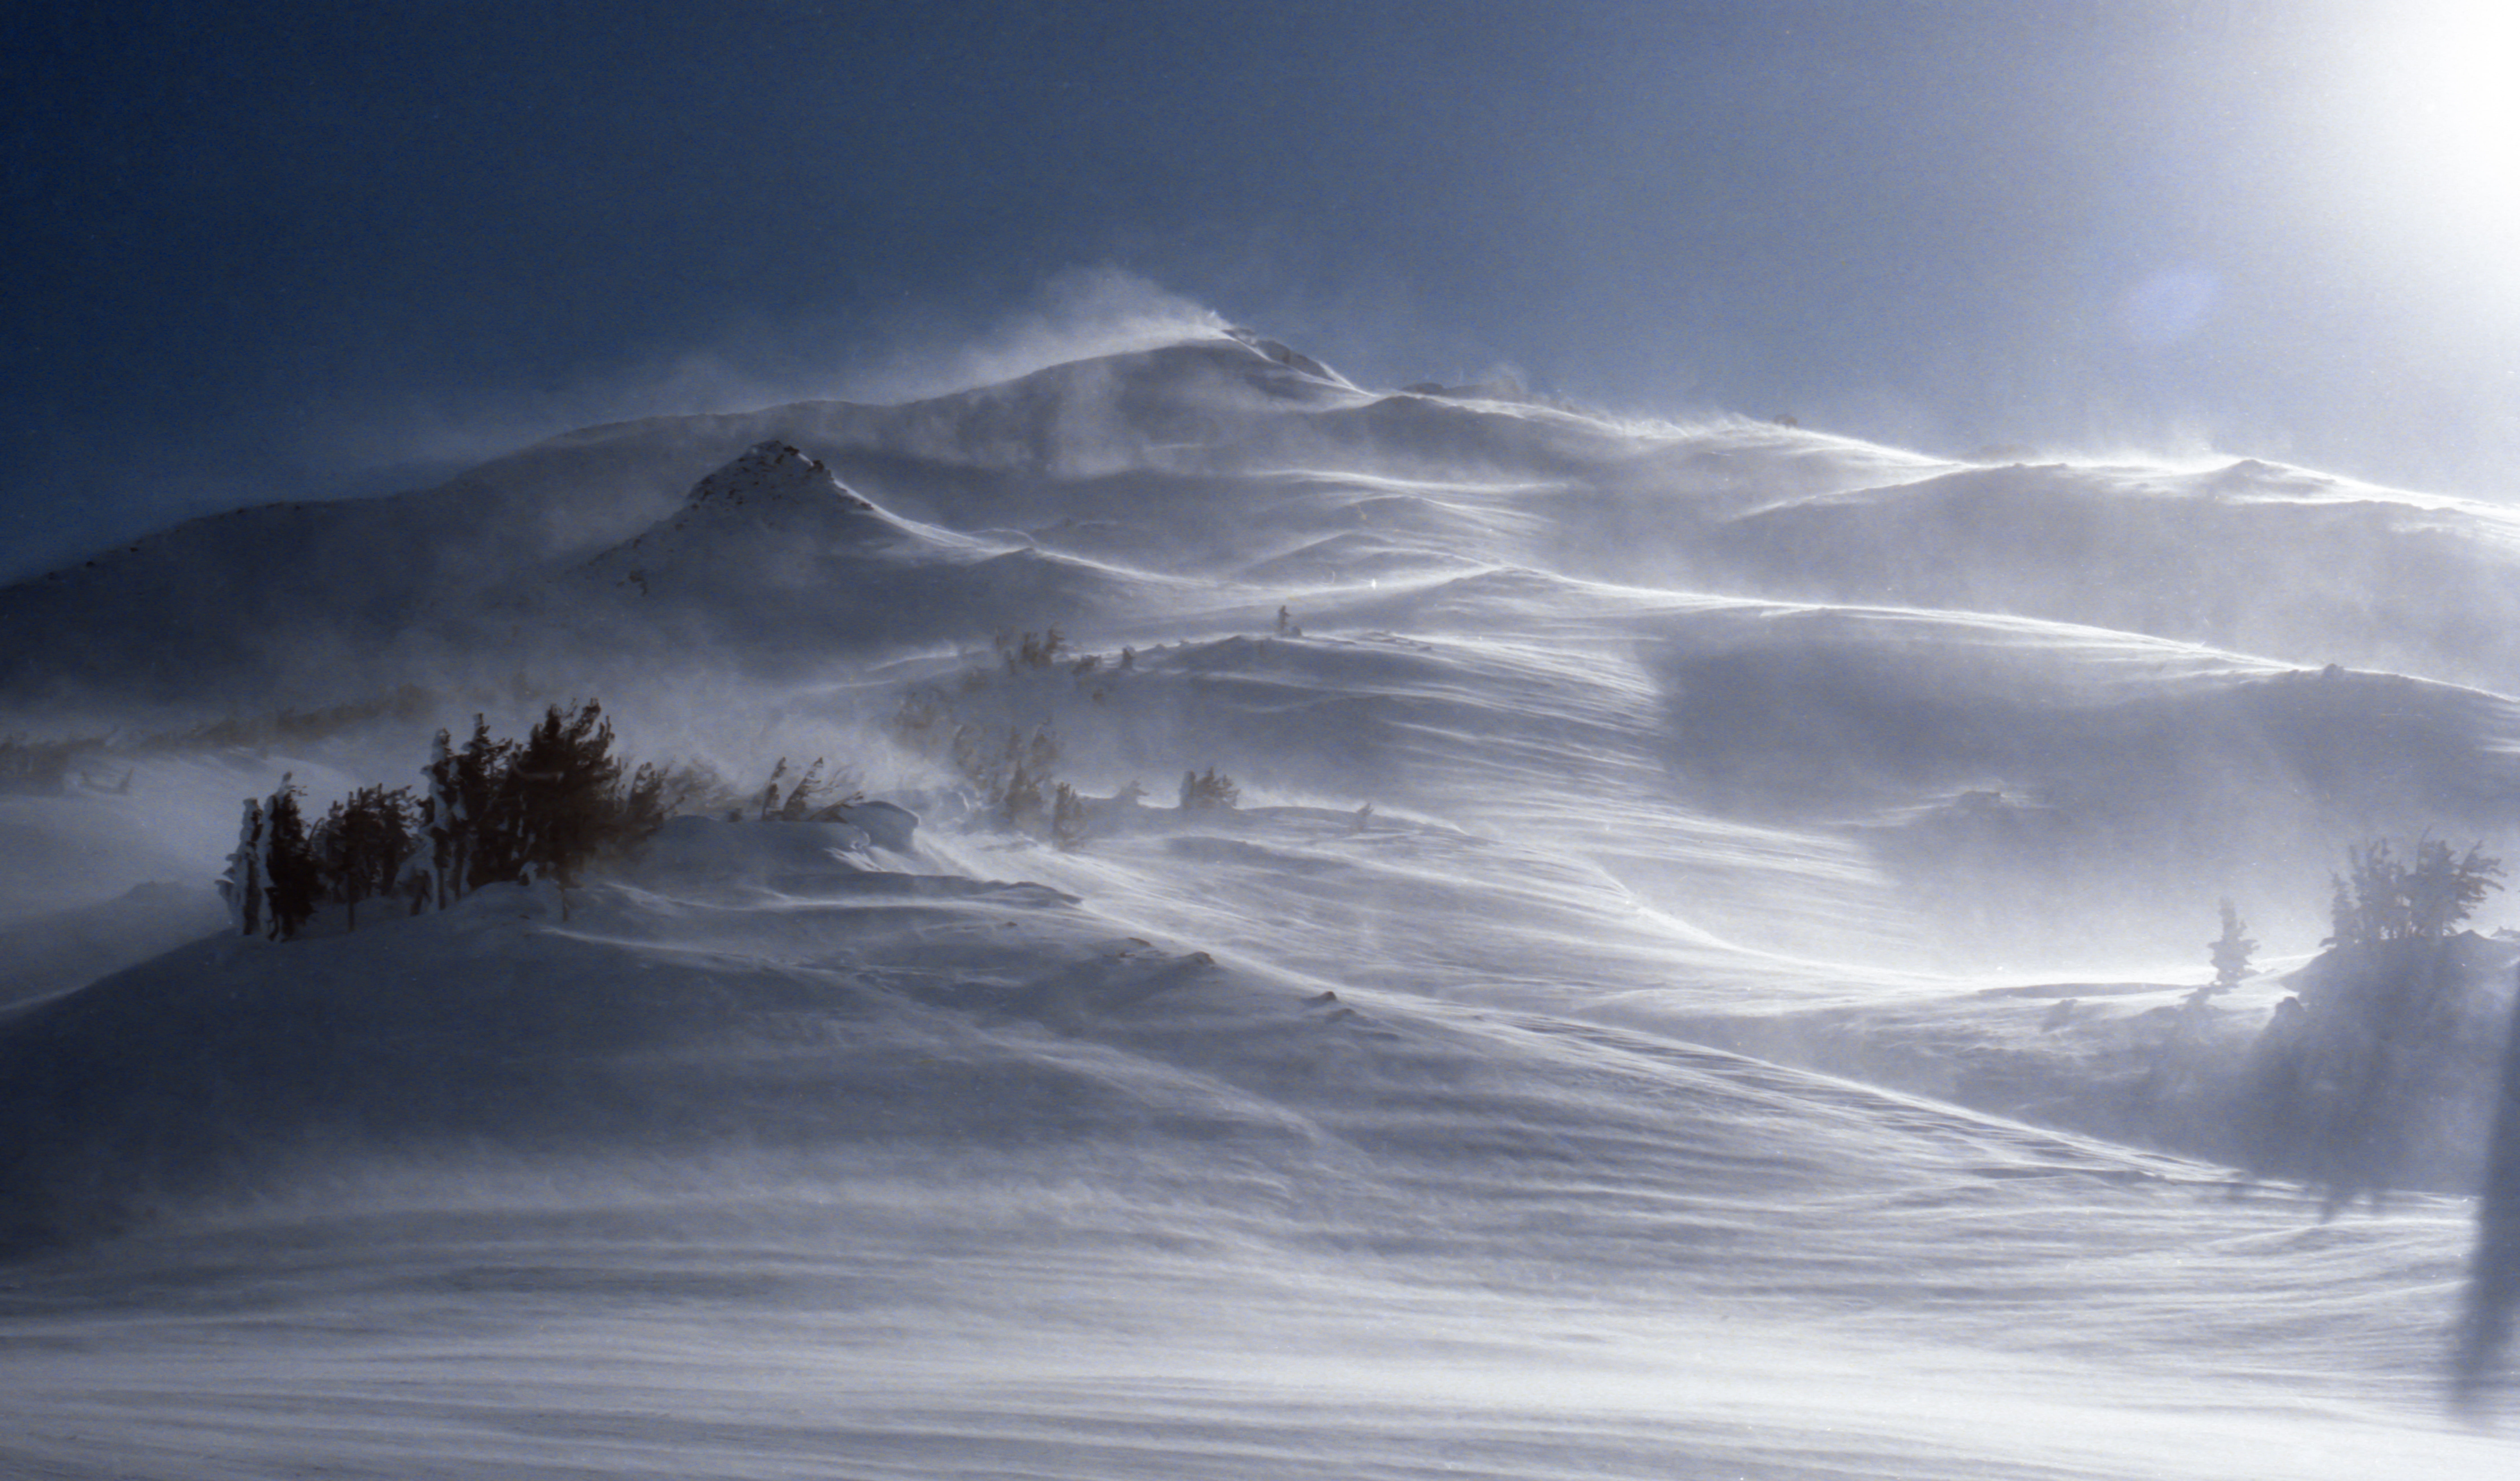 landscape photo of snow covered mountain